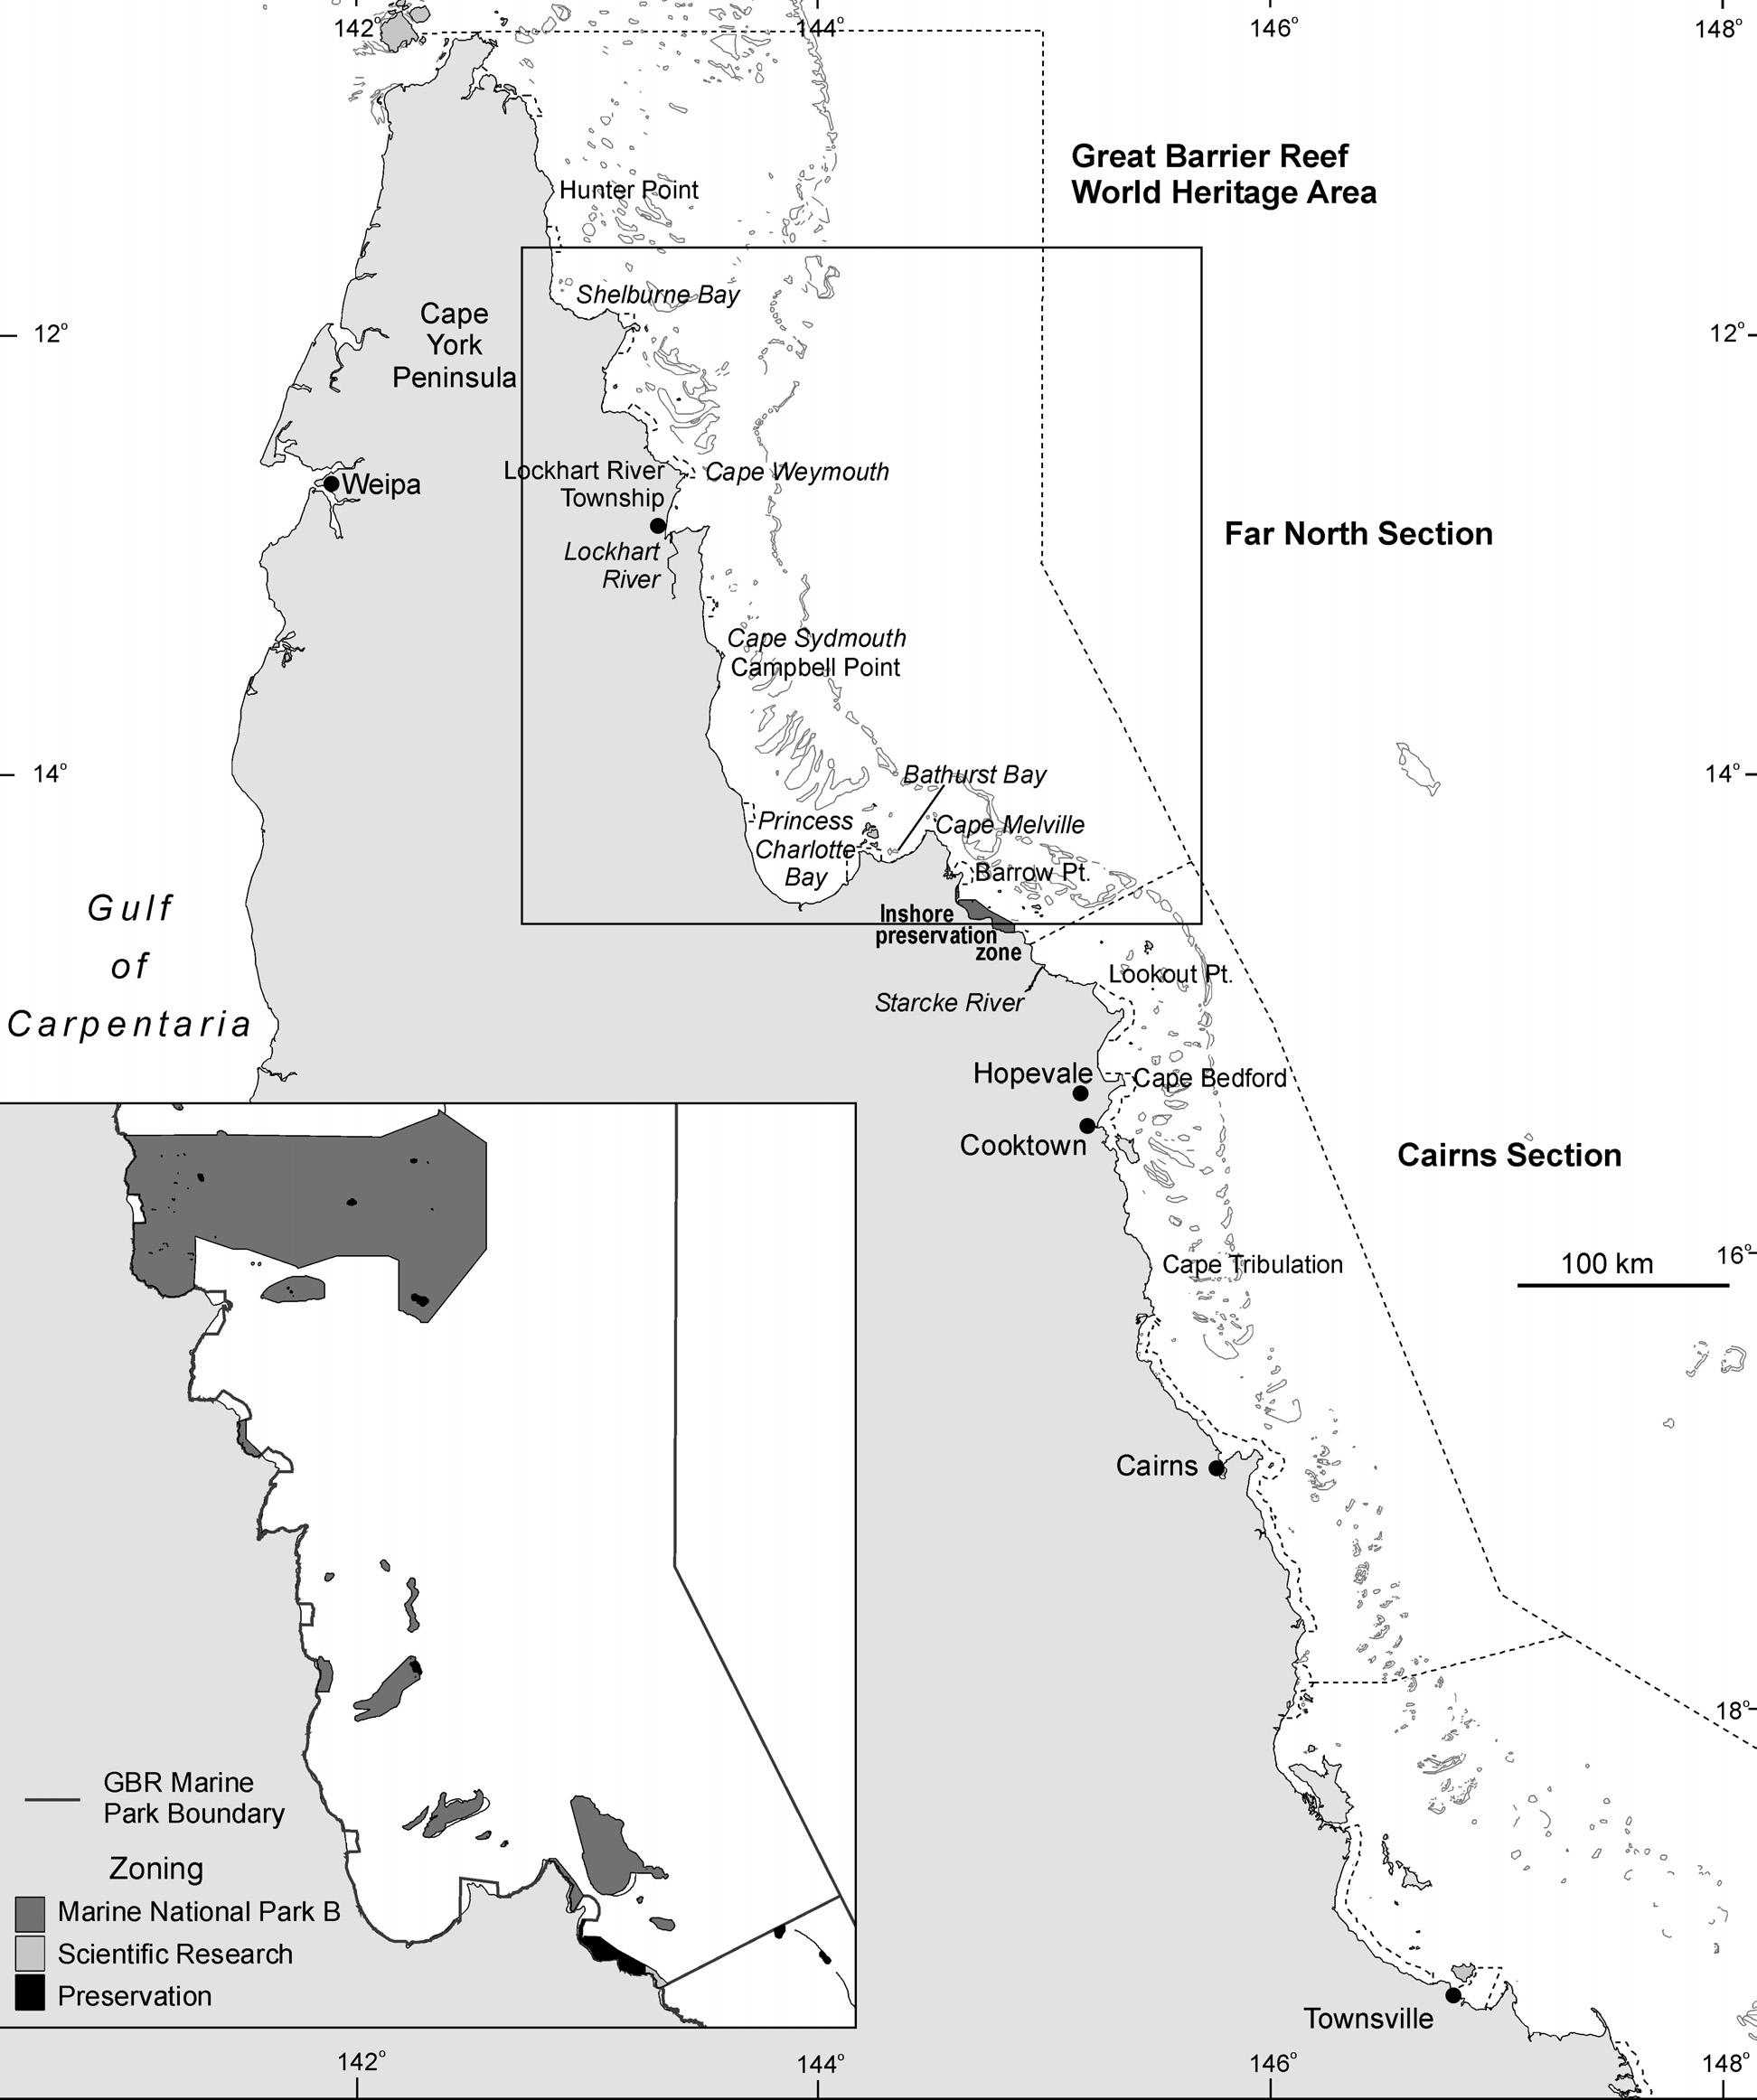 Figure 6.5 The northern section of the Great Barrier Reef World Heritage Area, Australia, showing place names mentioned in the text and areas zoned to protect dugongs.